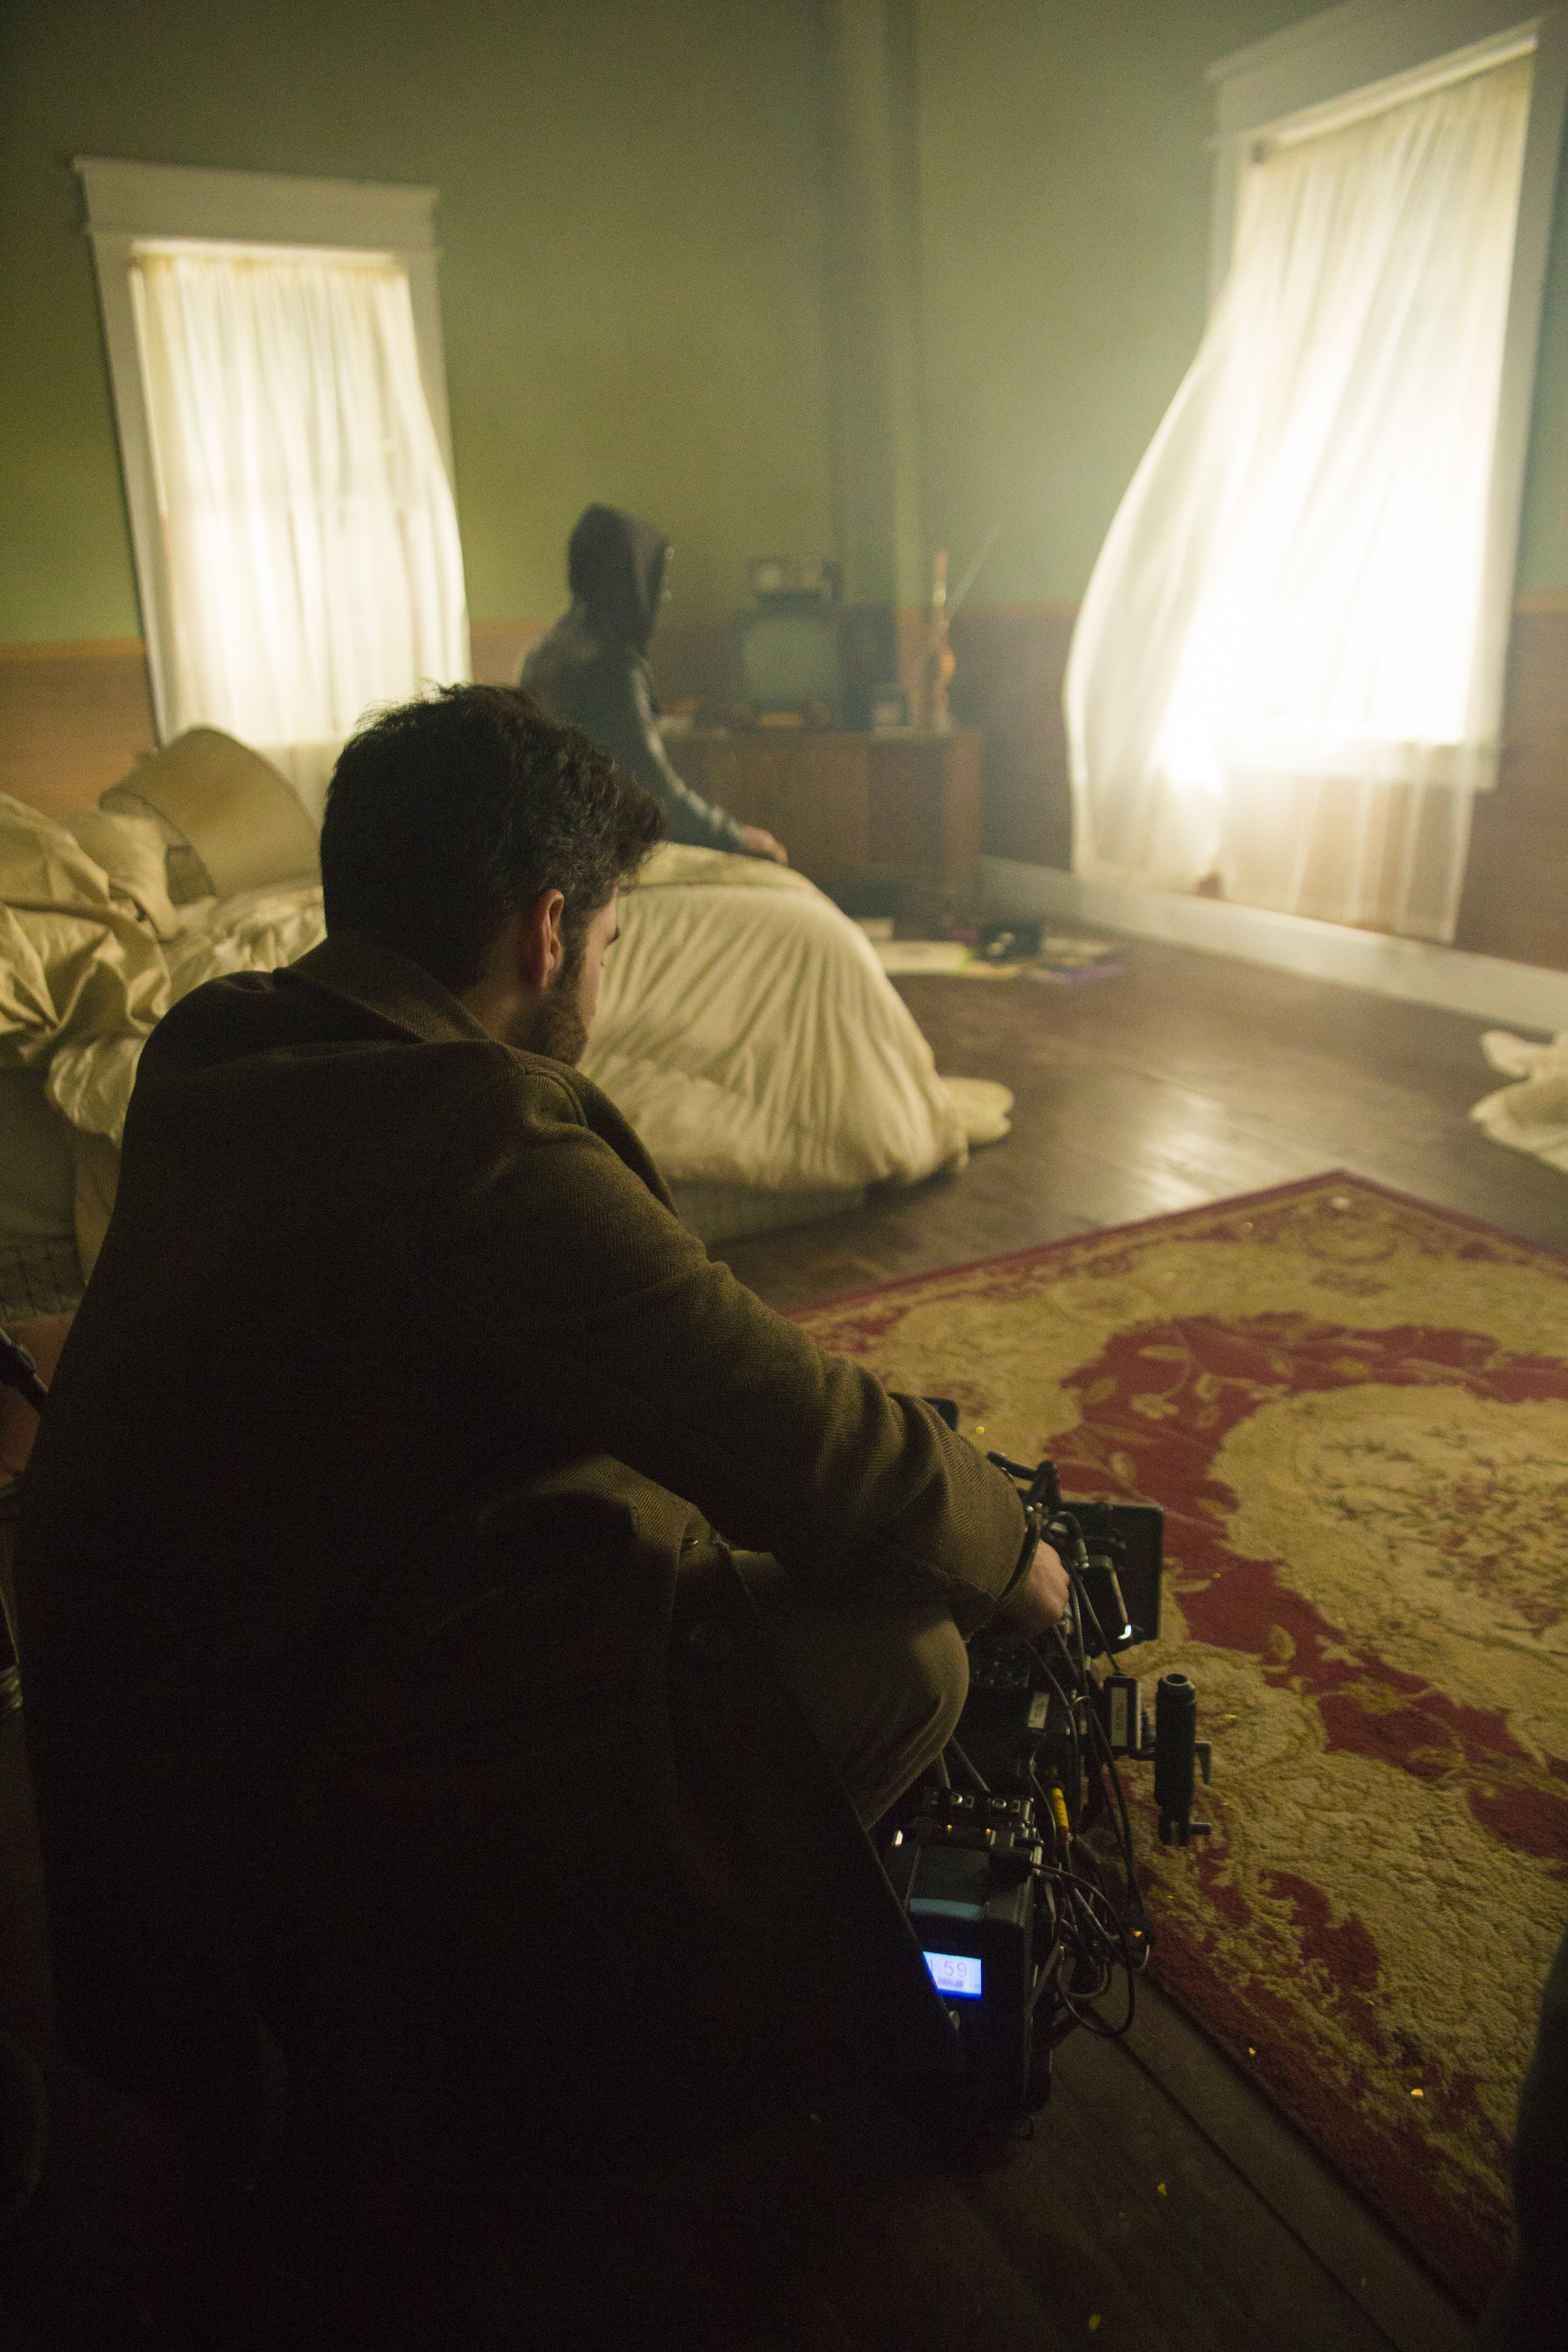 Matt Bendo composing a shot on the set of Mind Games Photo Credit - Samuel Pollock